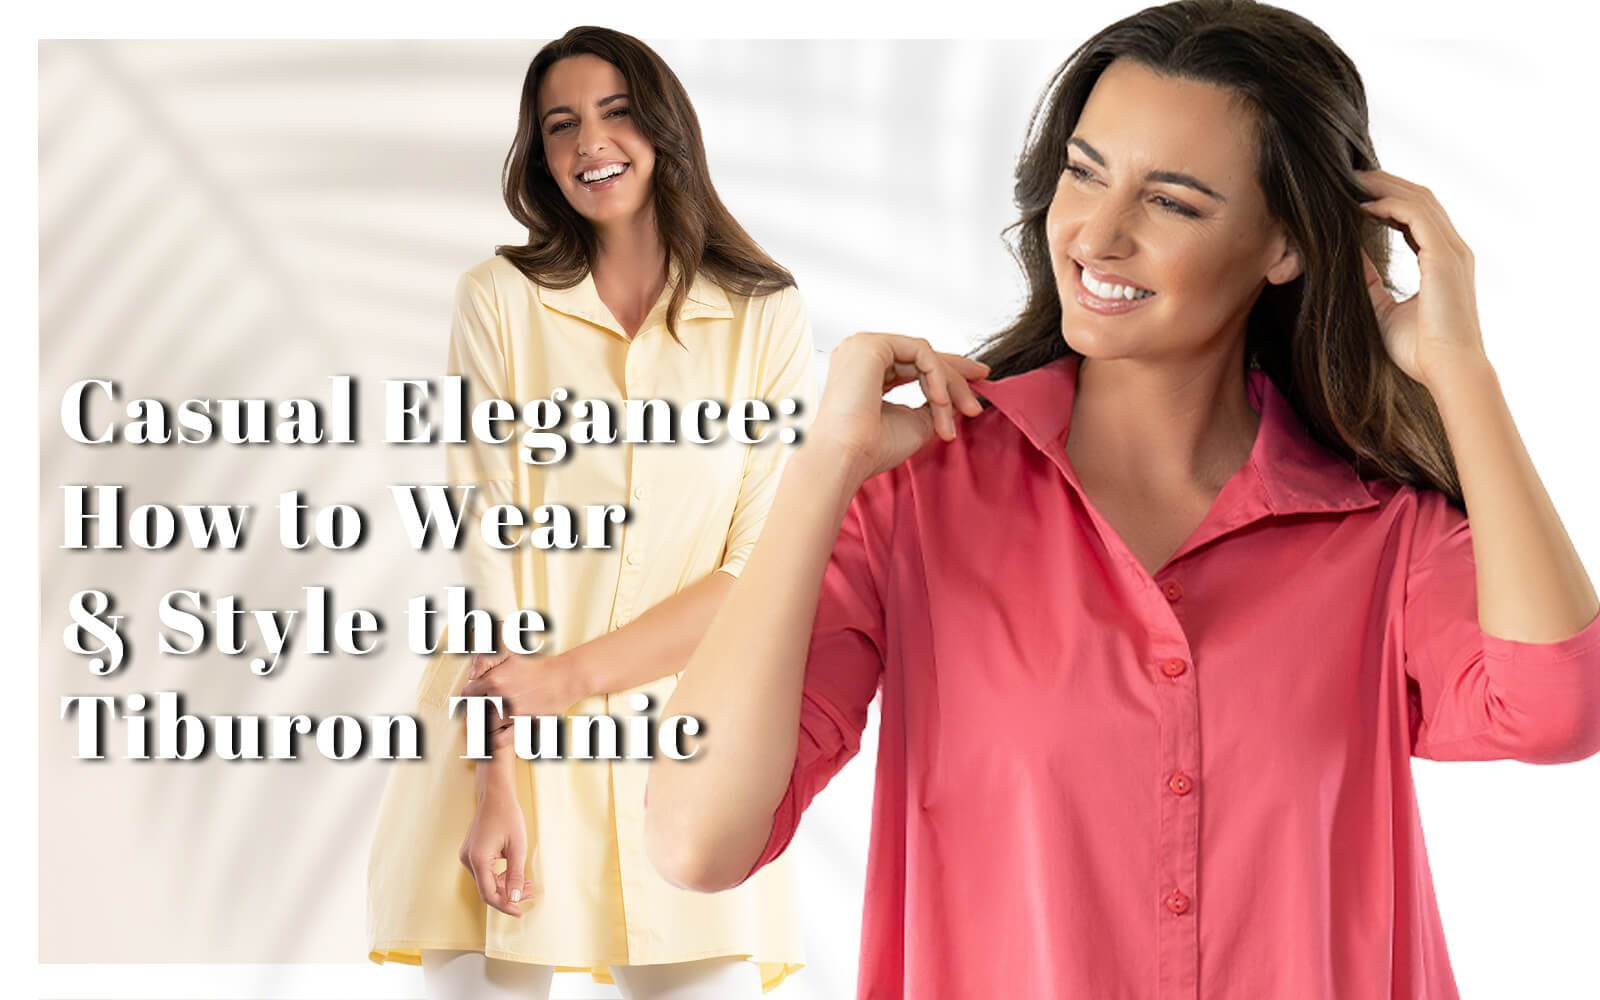 Casual Elegance: How to Wear and Style the Tiburon Tunic